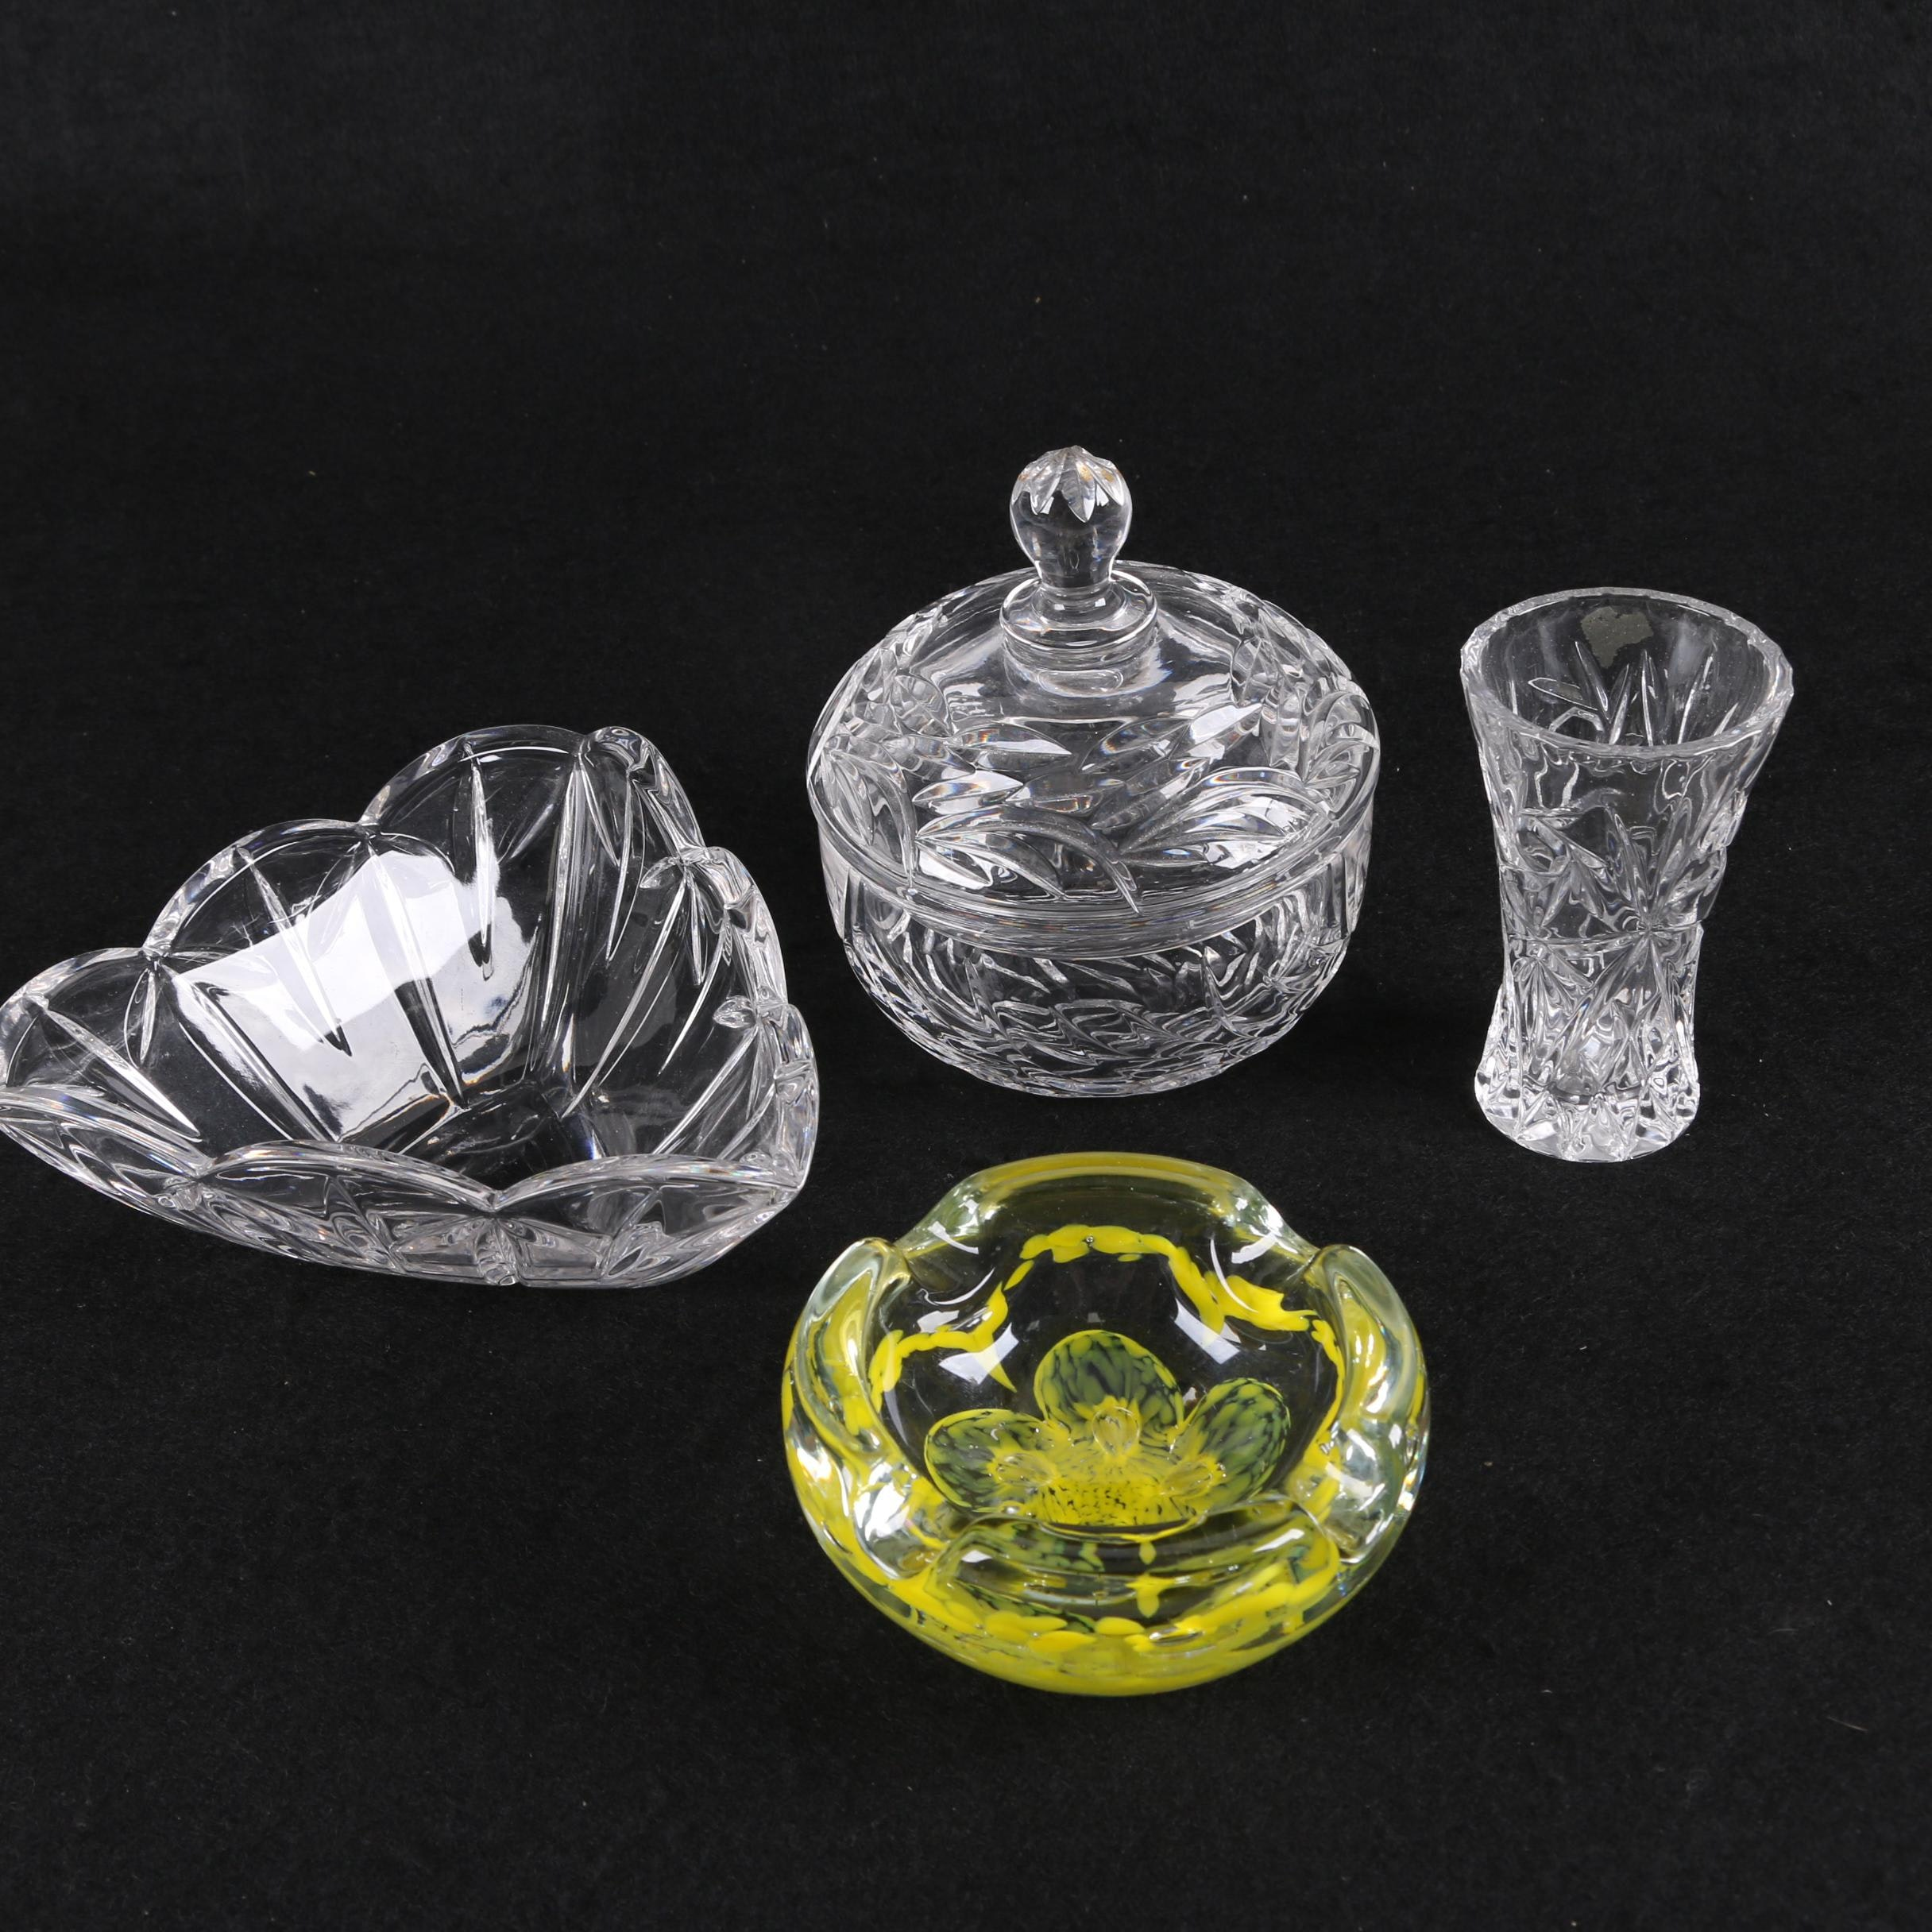 Art Glass Ash Receiver and Cut Glass Decor Including a Candy Dish and Vase